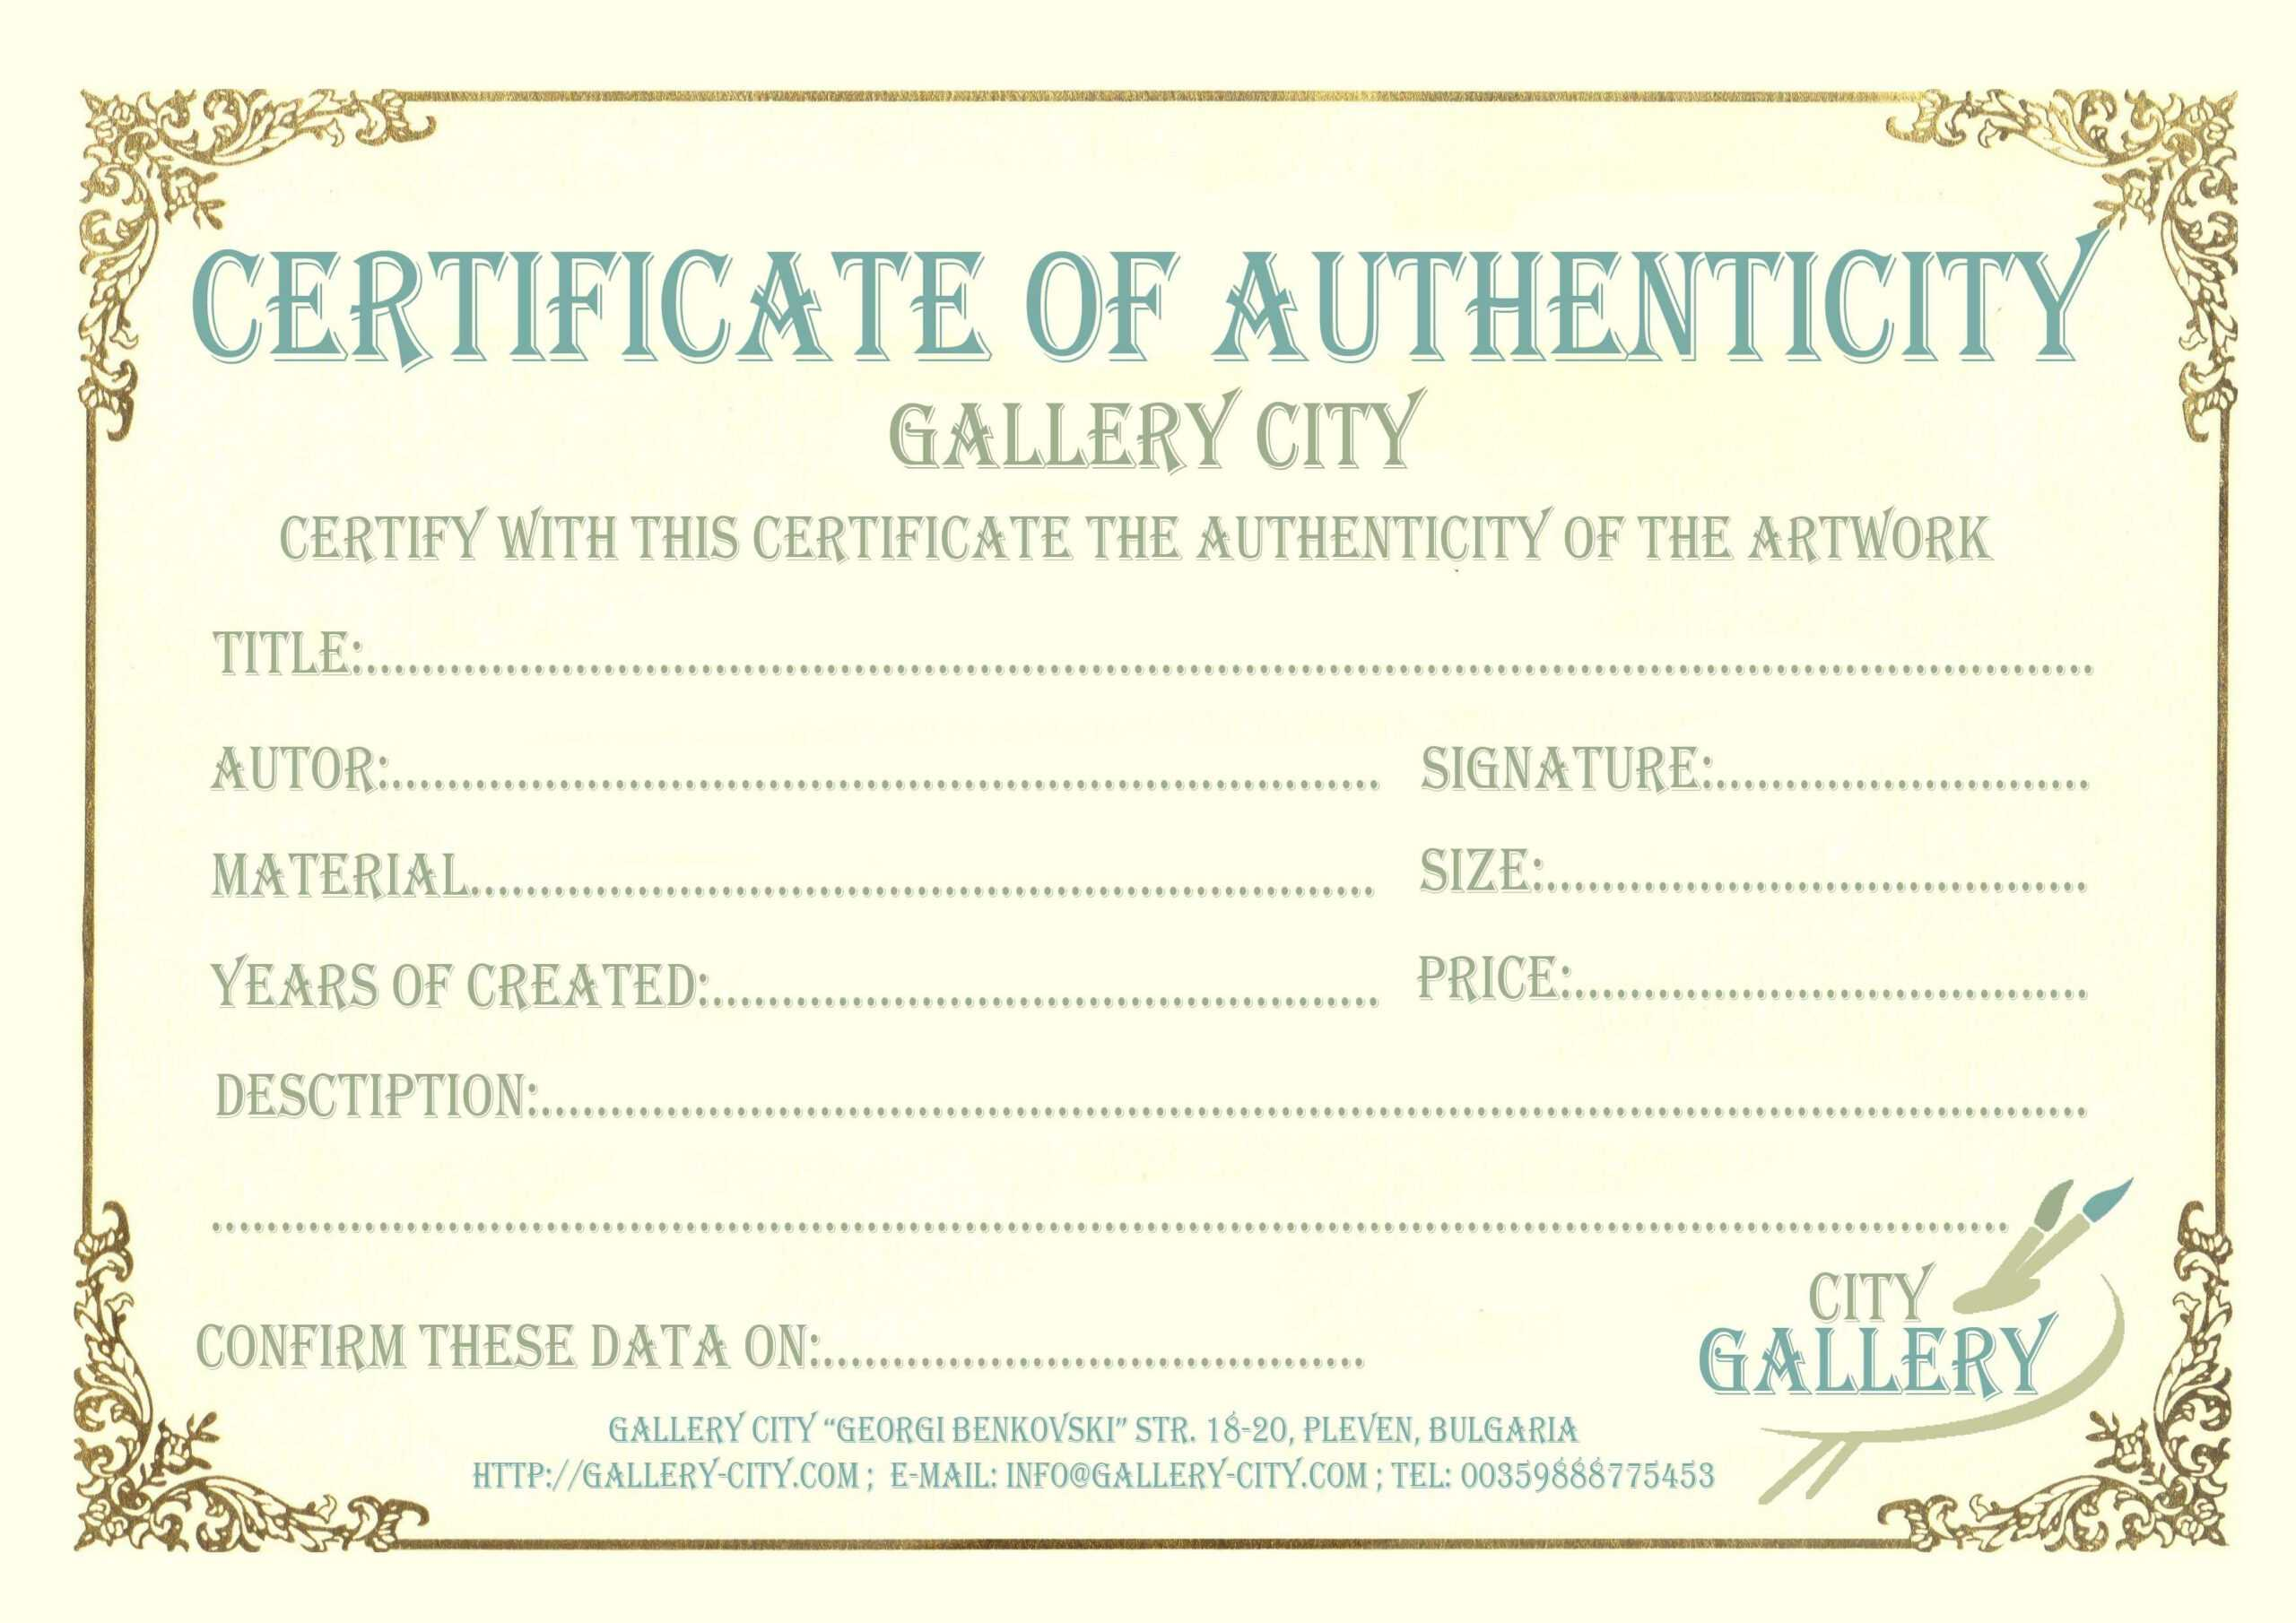 Certificate Authenticity Template Art Authenticity Intended For Photography Certificate Of Authenticity Template